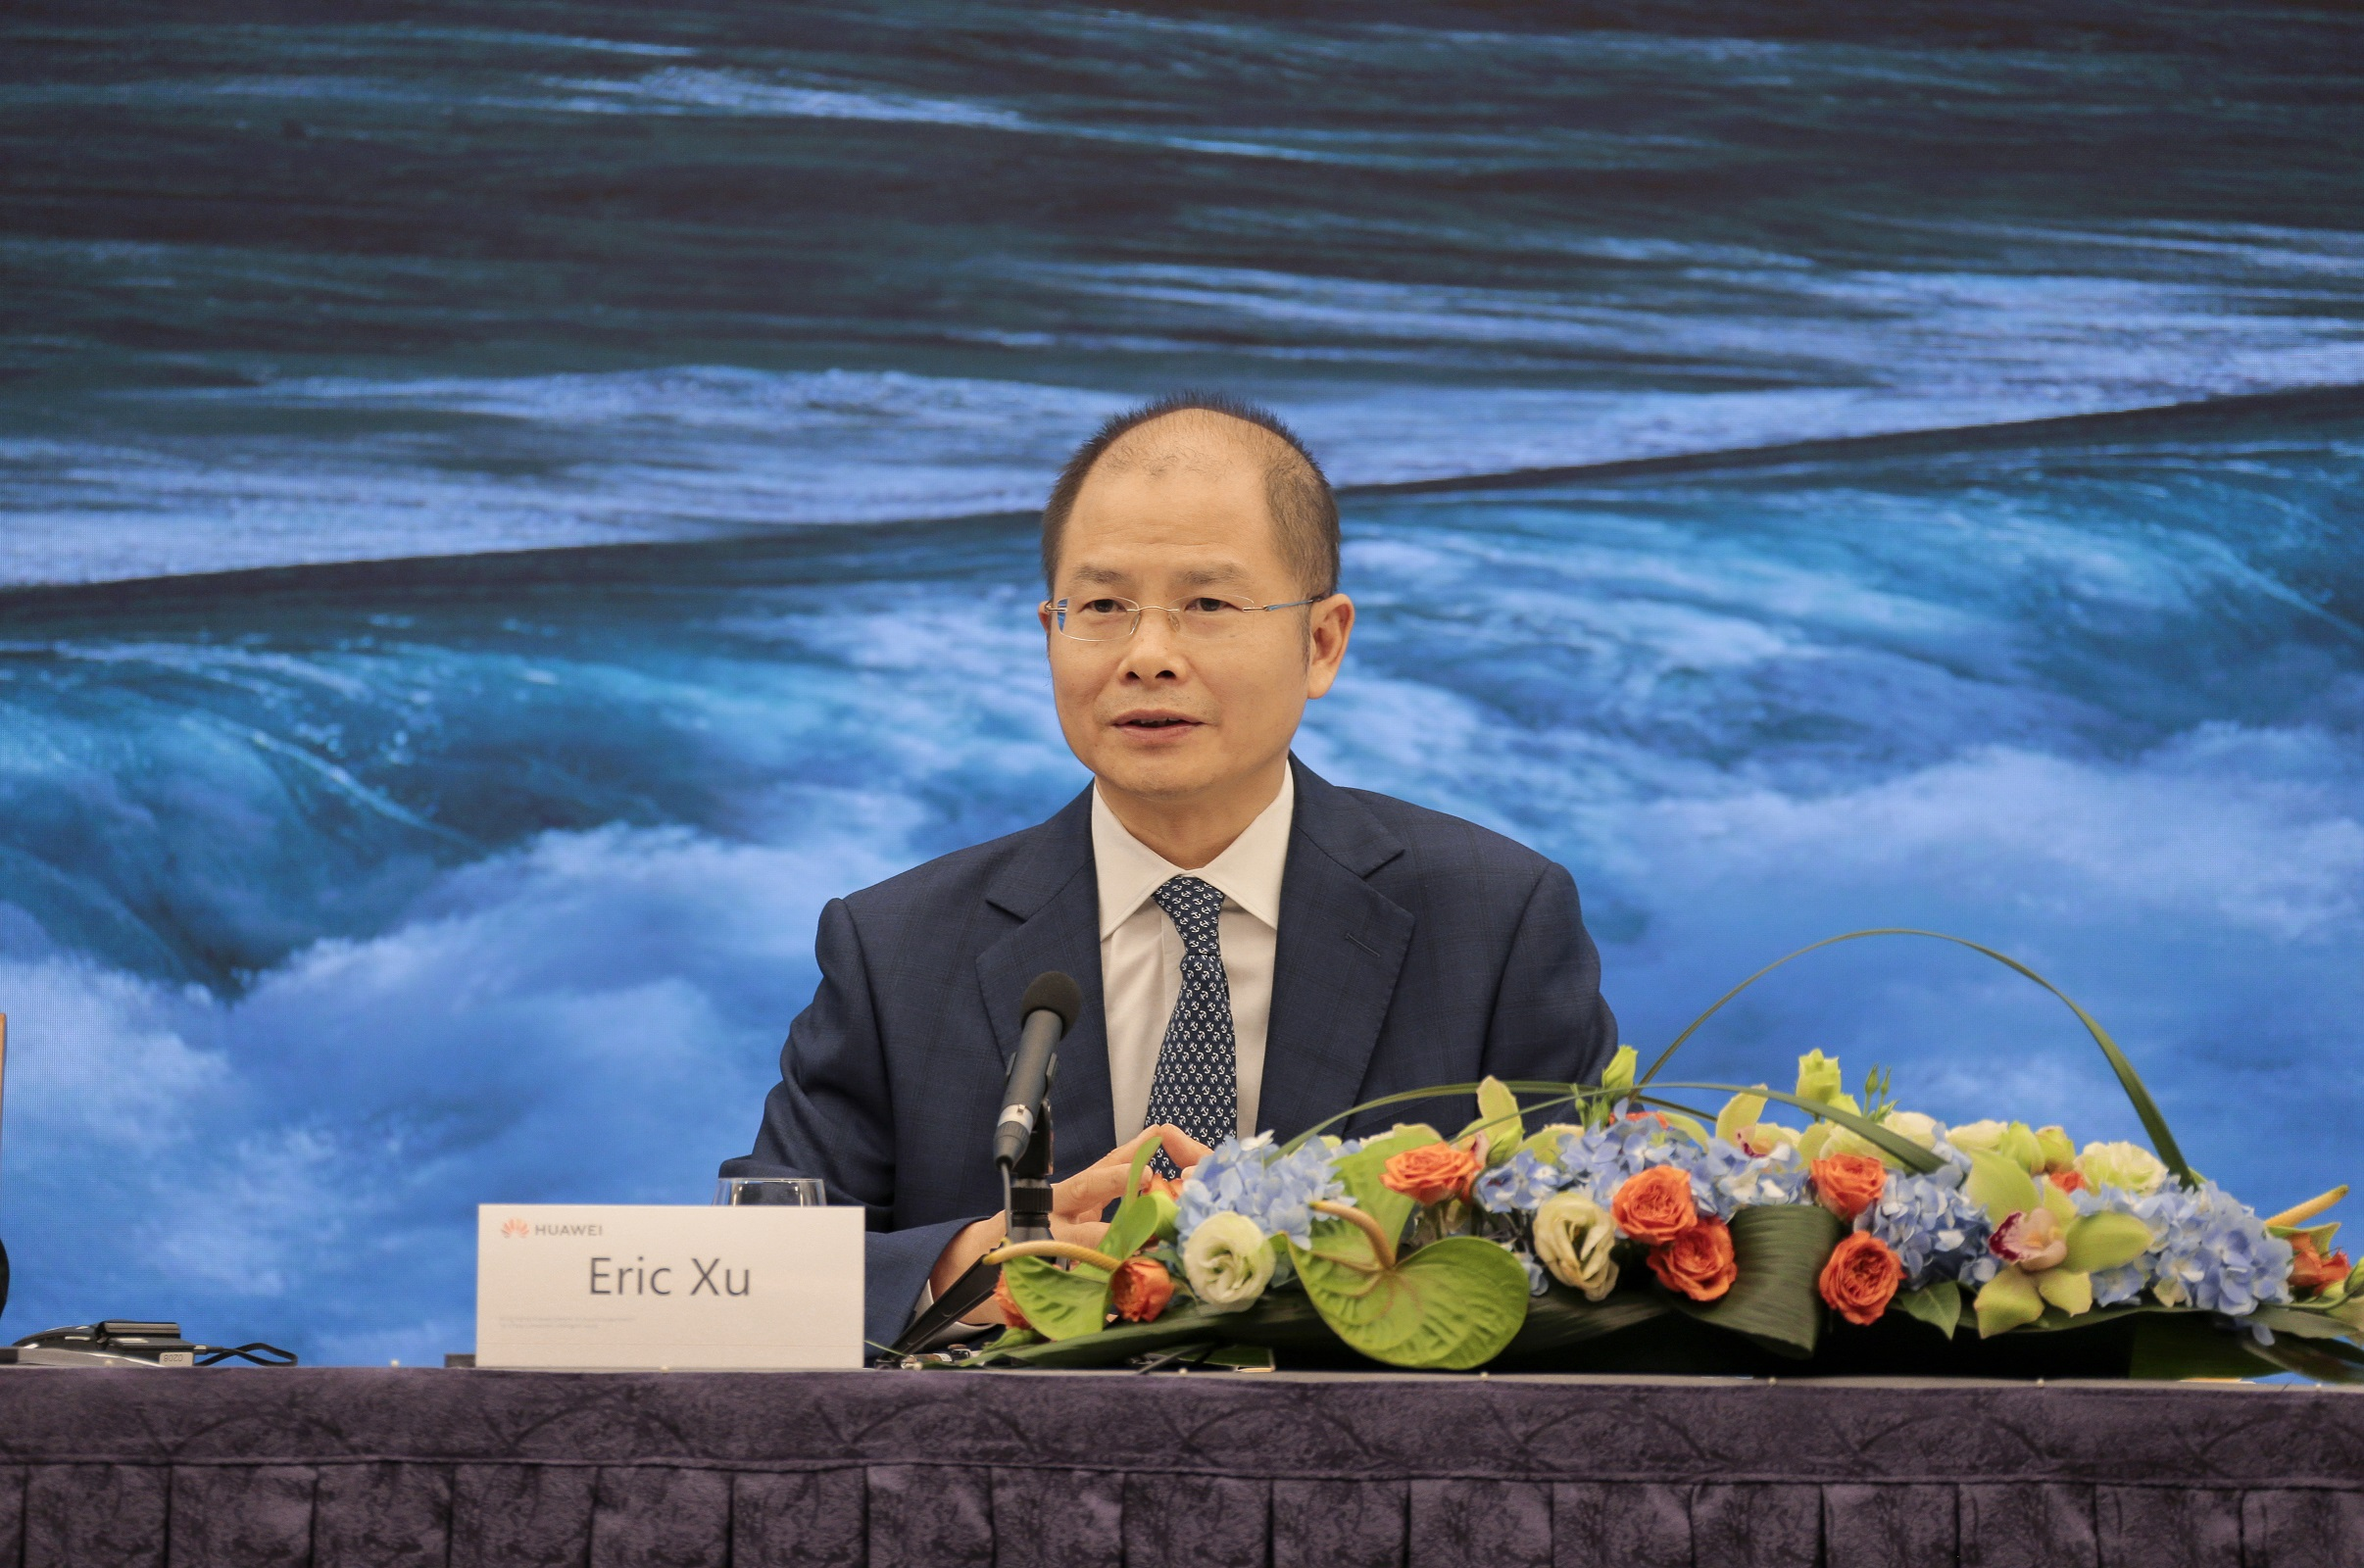 Eric Xu - Huawei releases its 2019 Annual Report